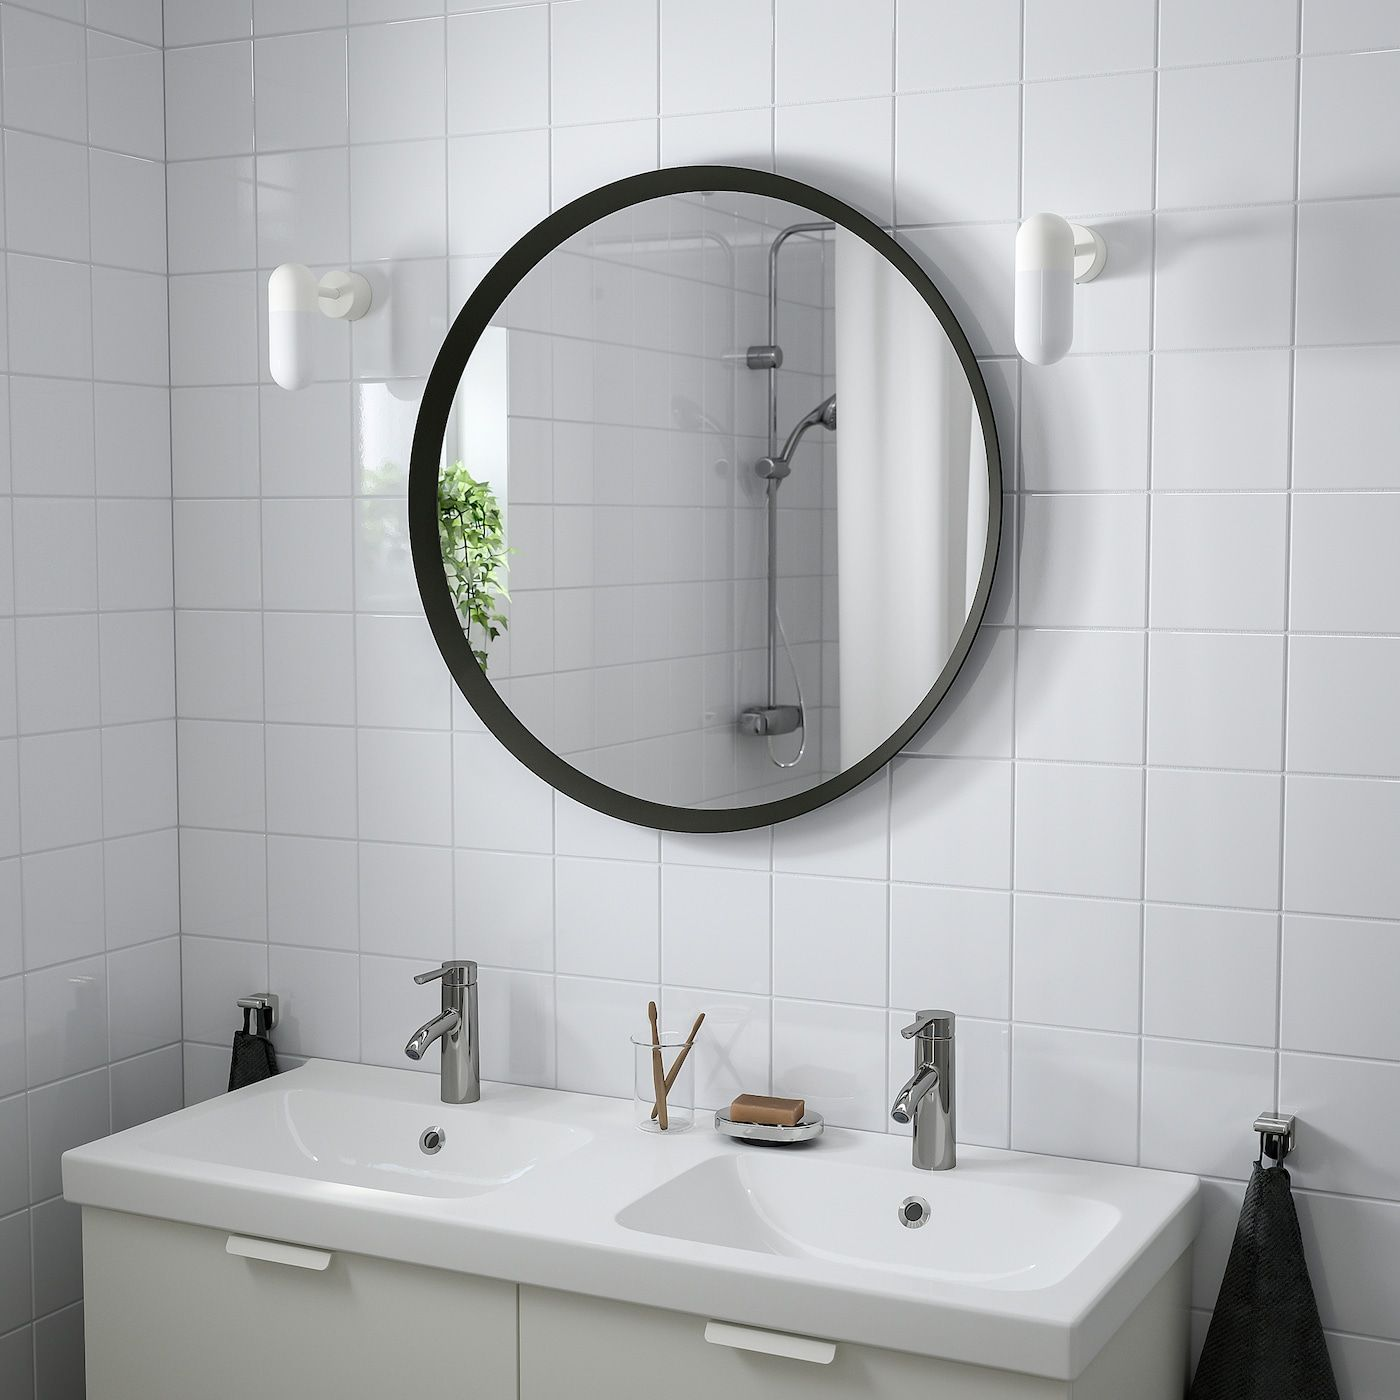 LANGESUND Mirror - dark gray - IKEA in 6  Mirror wall bathroom